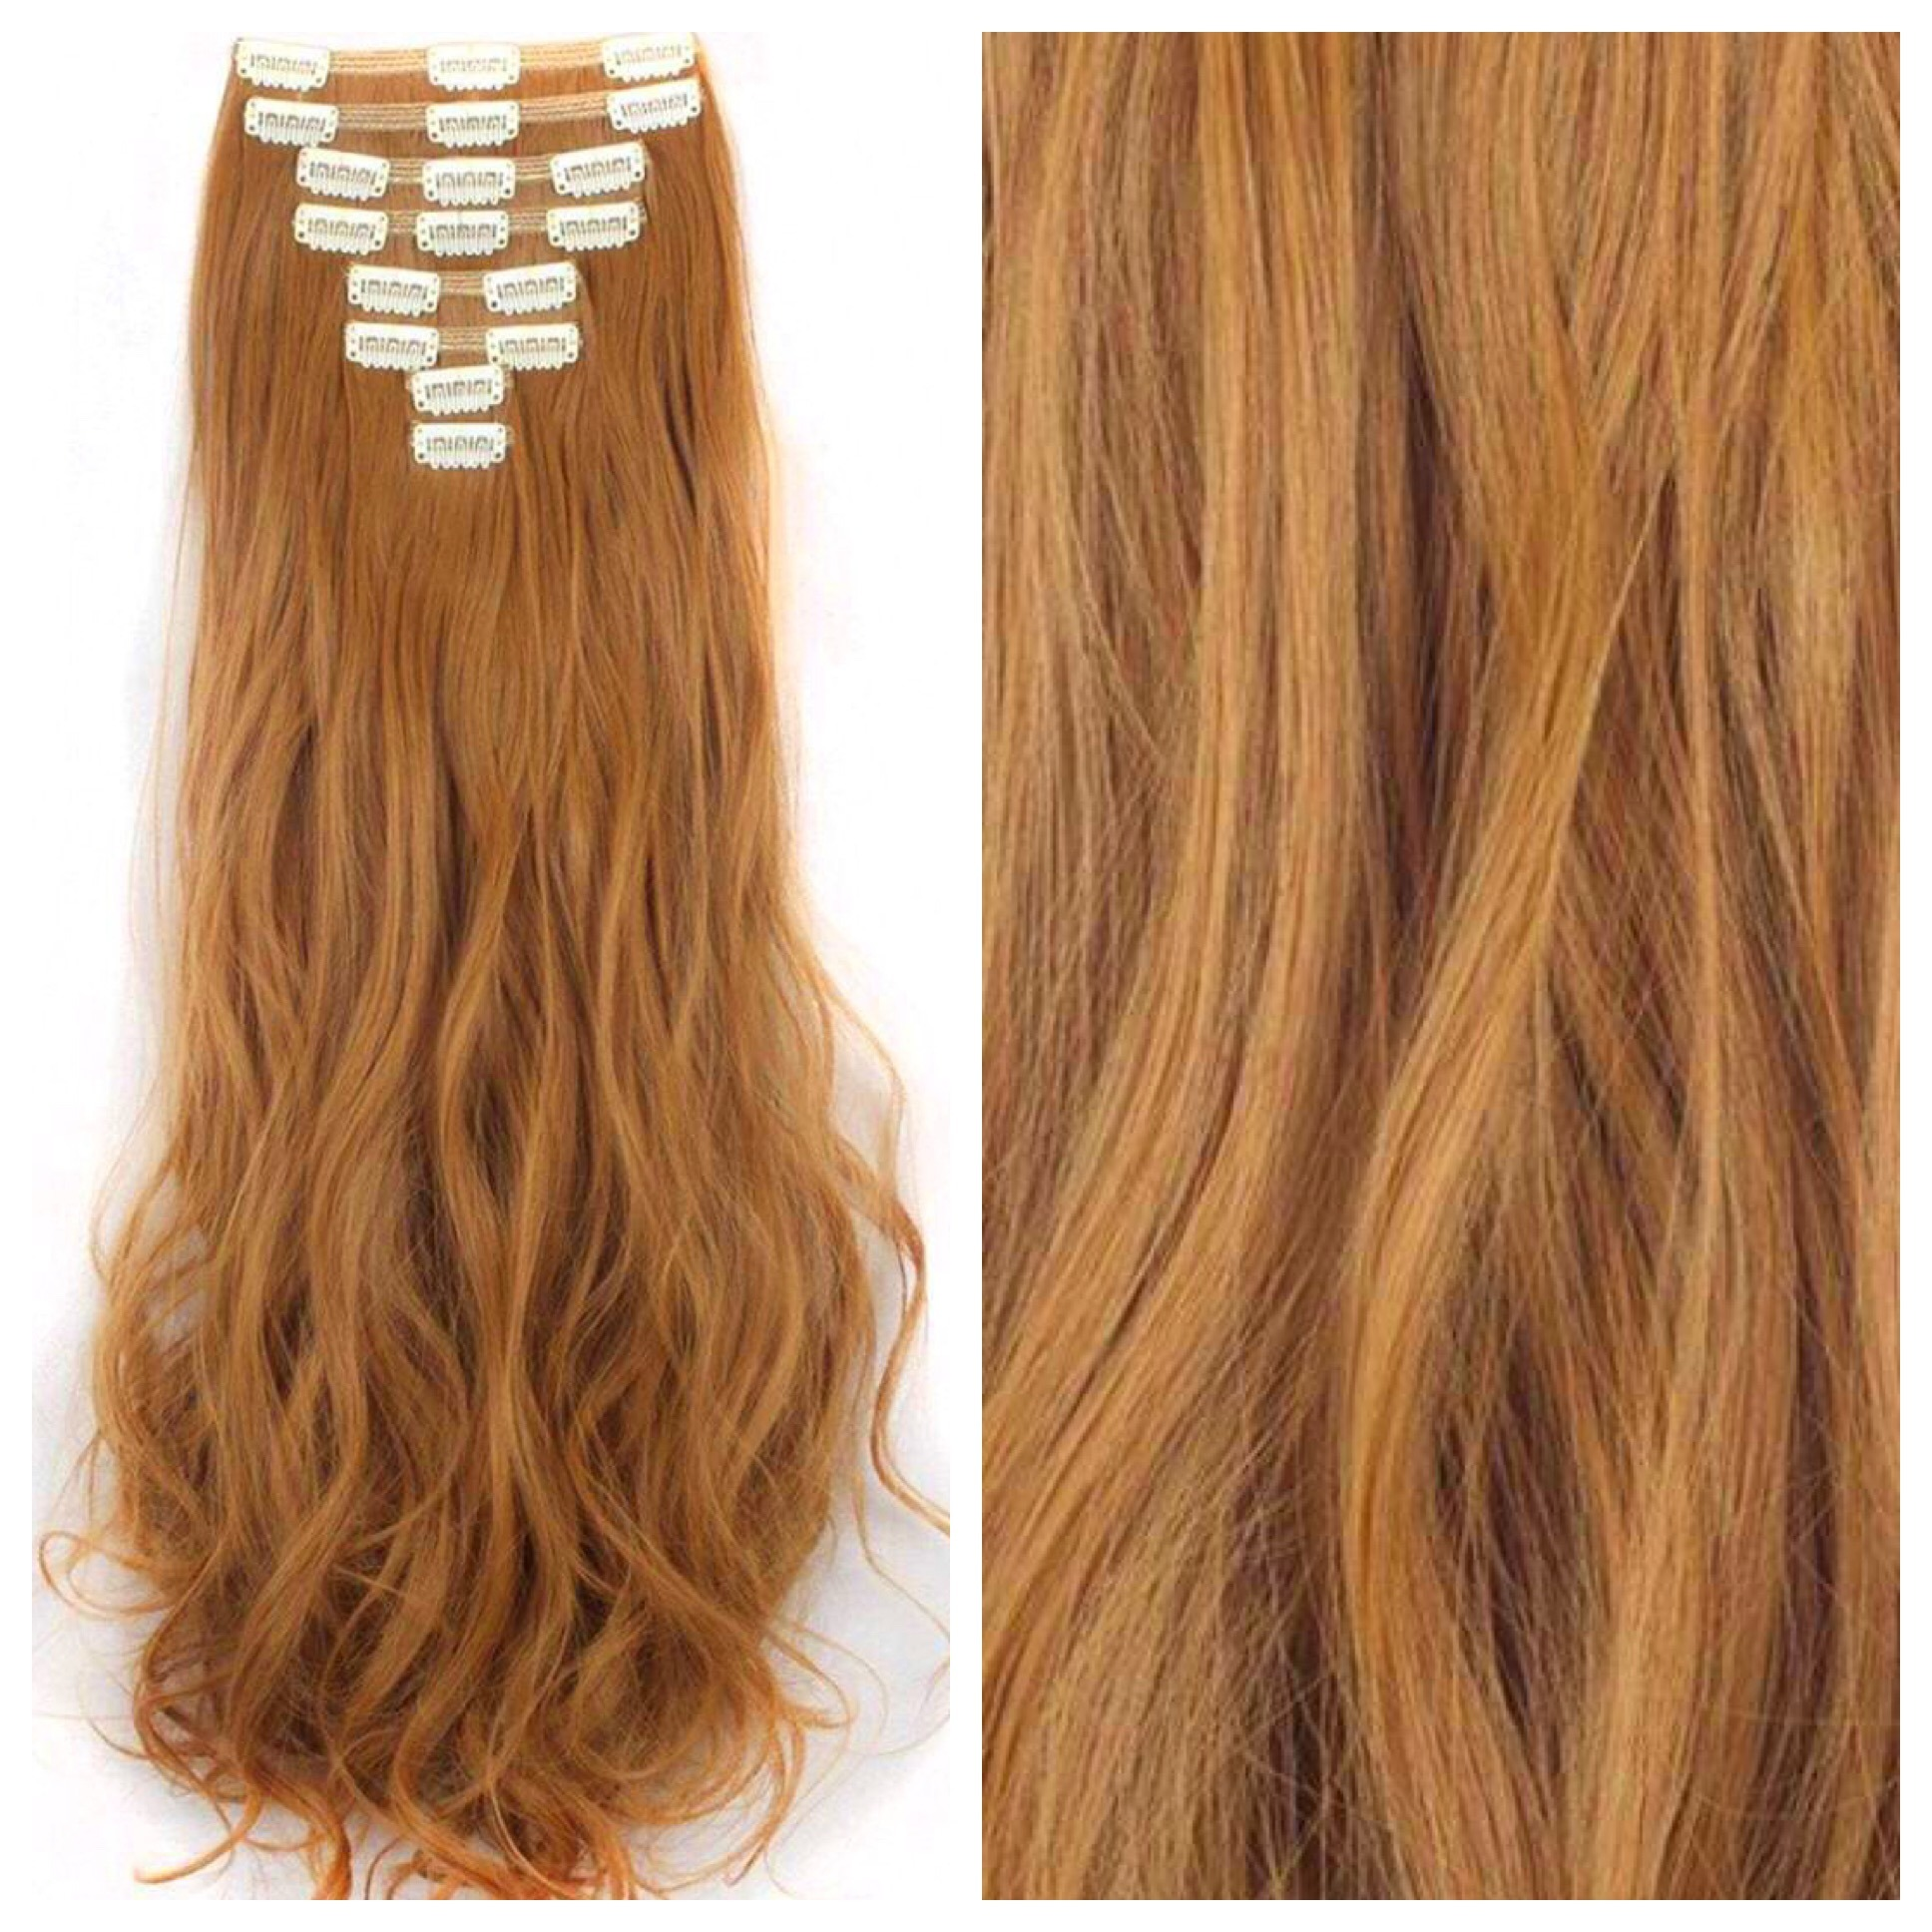 Ginger Brown Hair Extensions 24 Copper Clip In Remy Human Hair